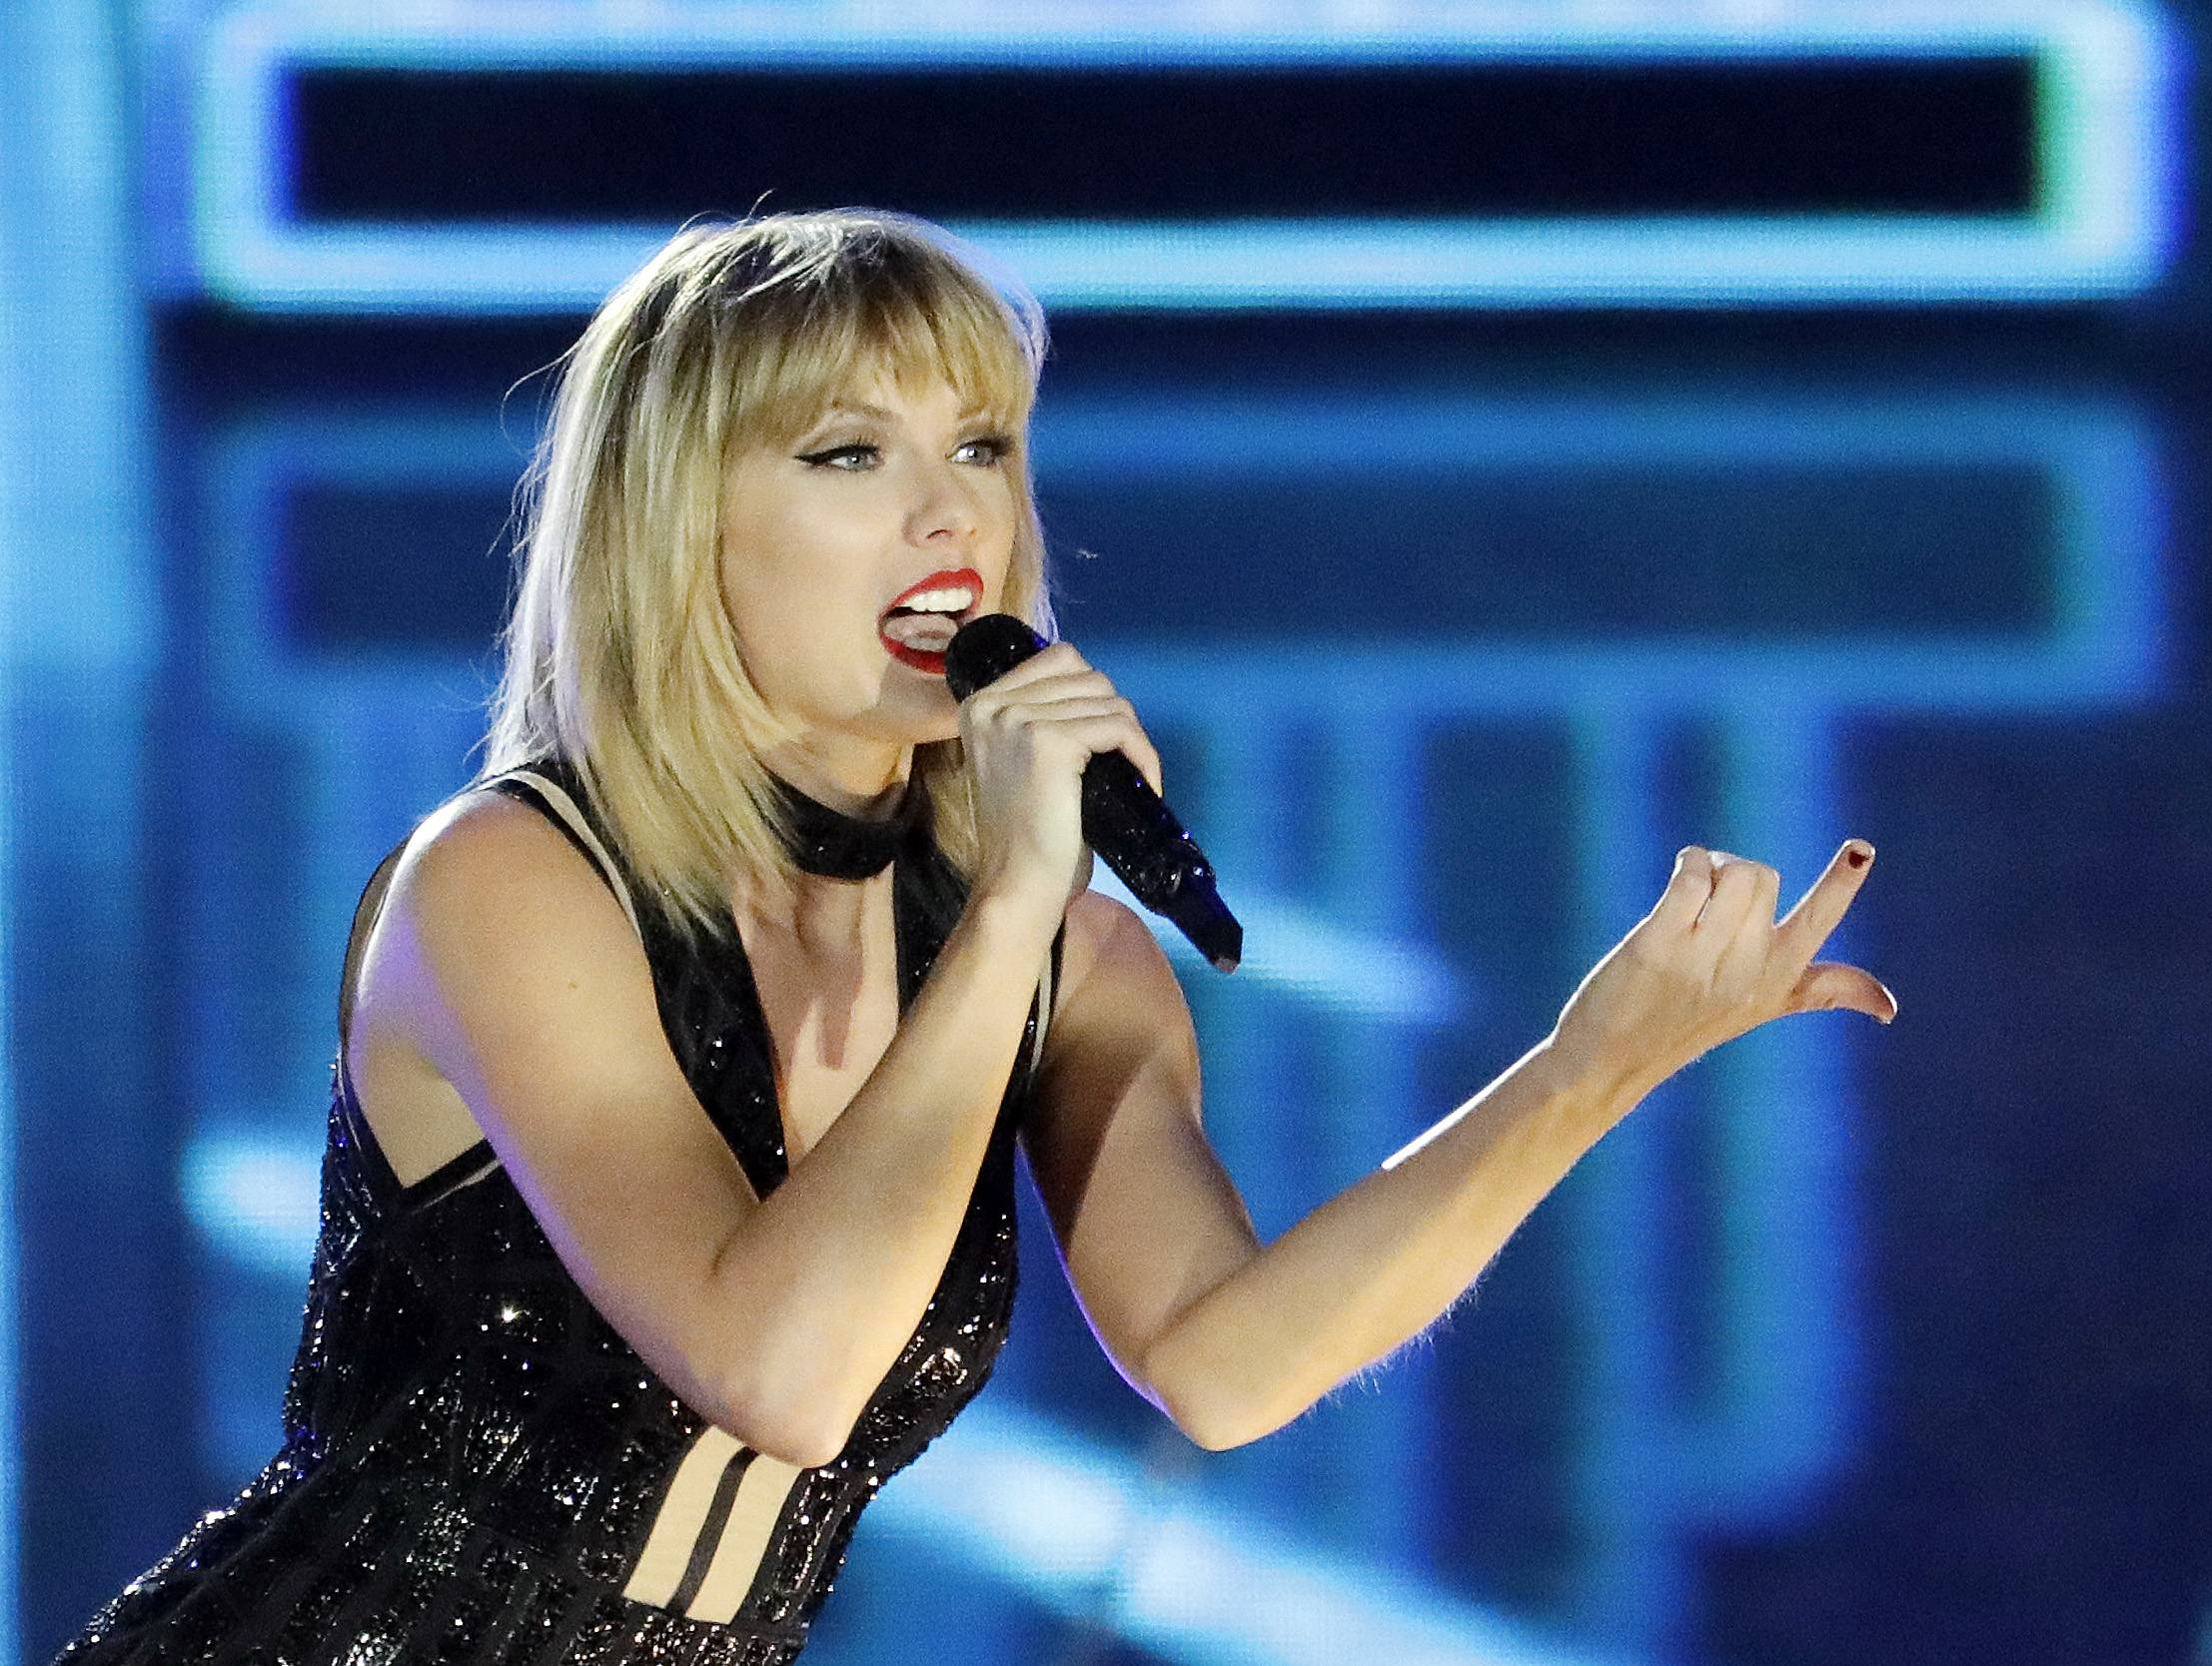 Taylor Swift will headline the B96 Jingle Bash on Thursday, Dec. 7, at Rosemont's Allstate Arena.